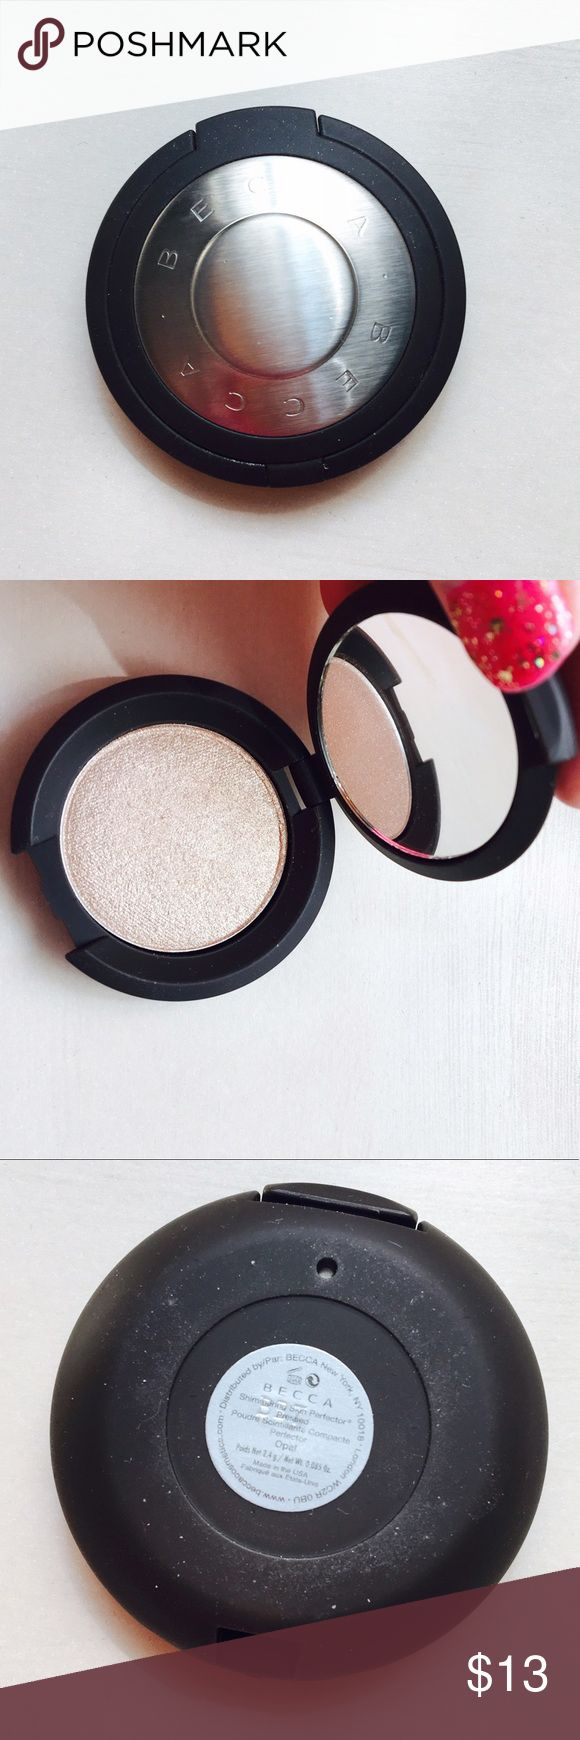 Becca Shimmering Skin Perfector Travel sized. Brand new. Shade = Opal. 2.4 grams. BECCA Makeup Luminizer